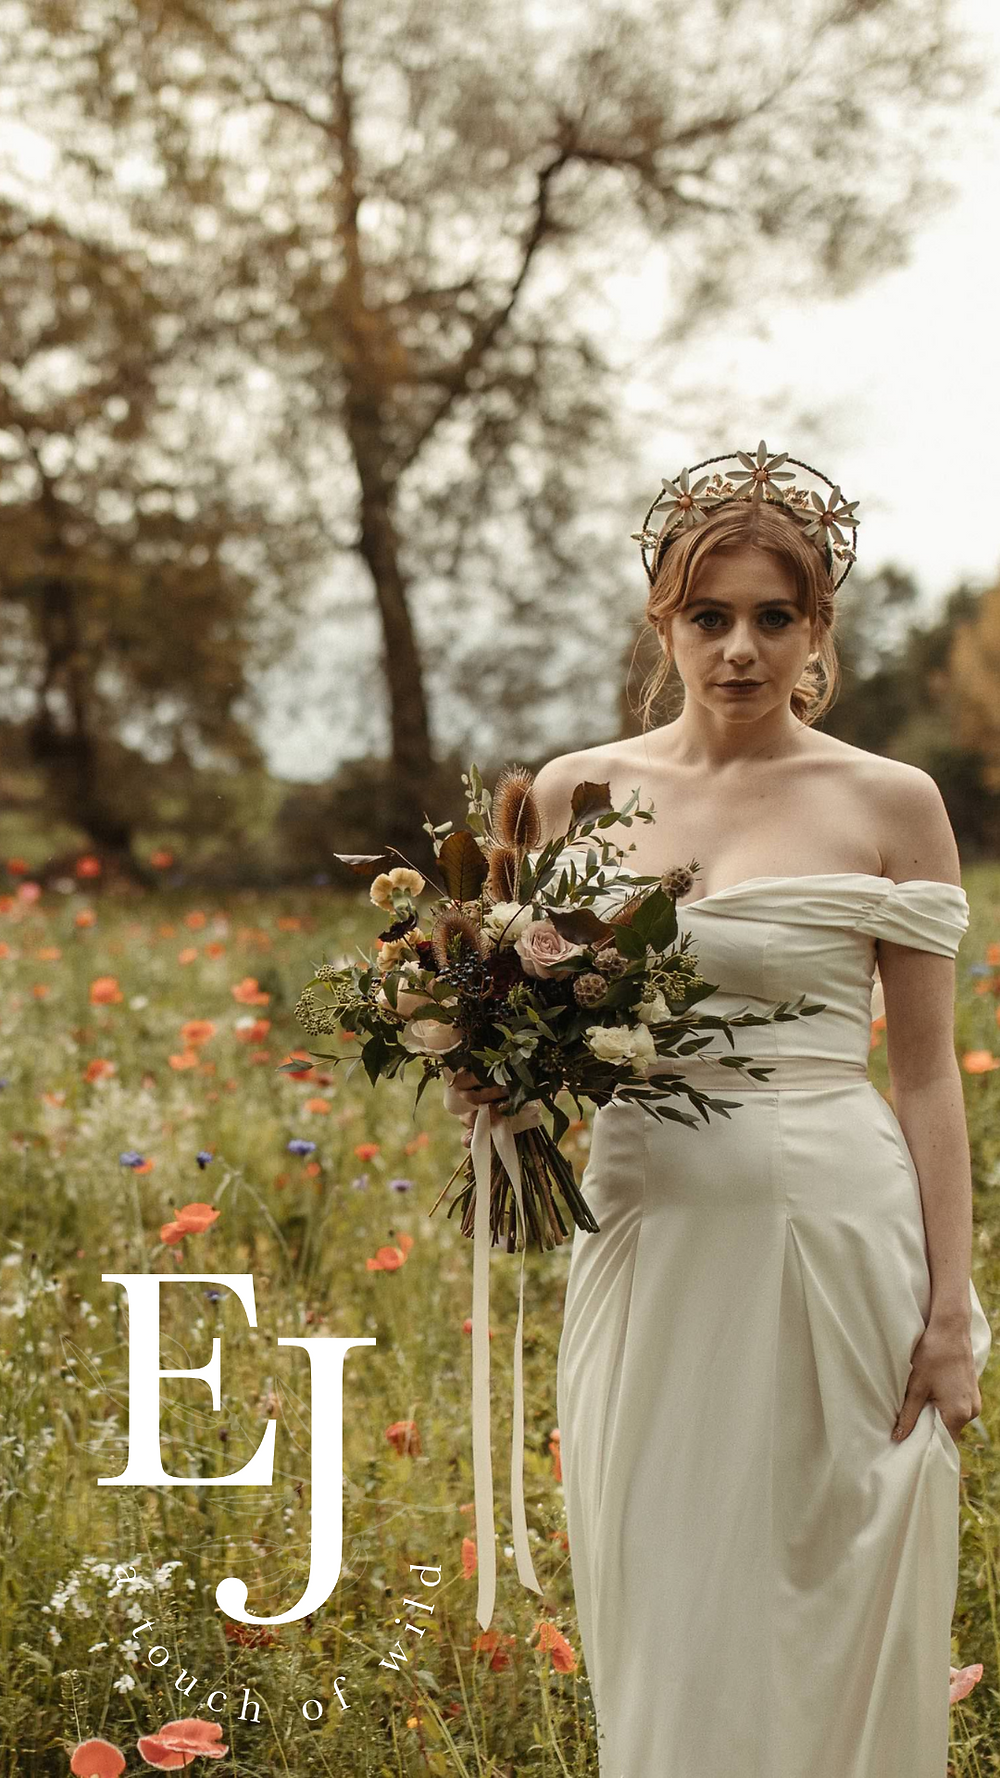 Emma Jane Floral Design logo with bride holding a wedding bouquet in a wildflower field